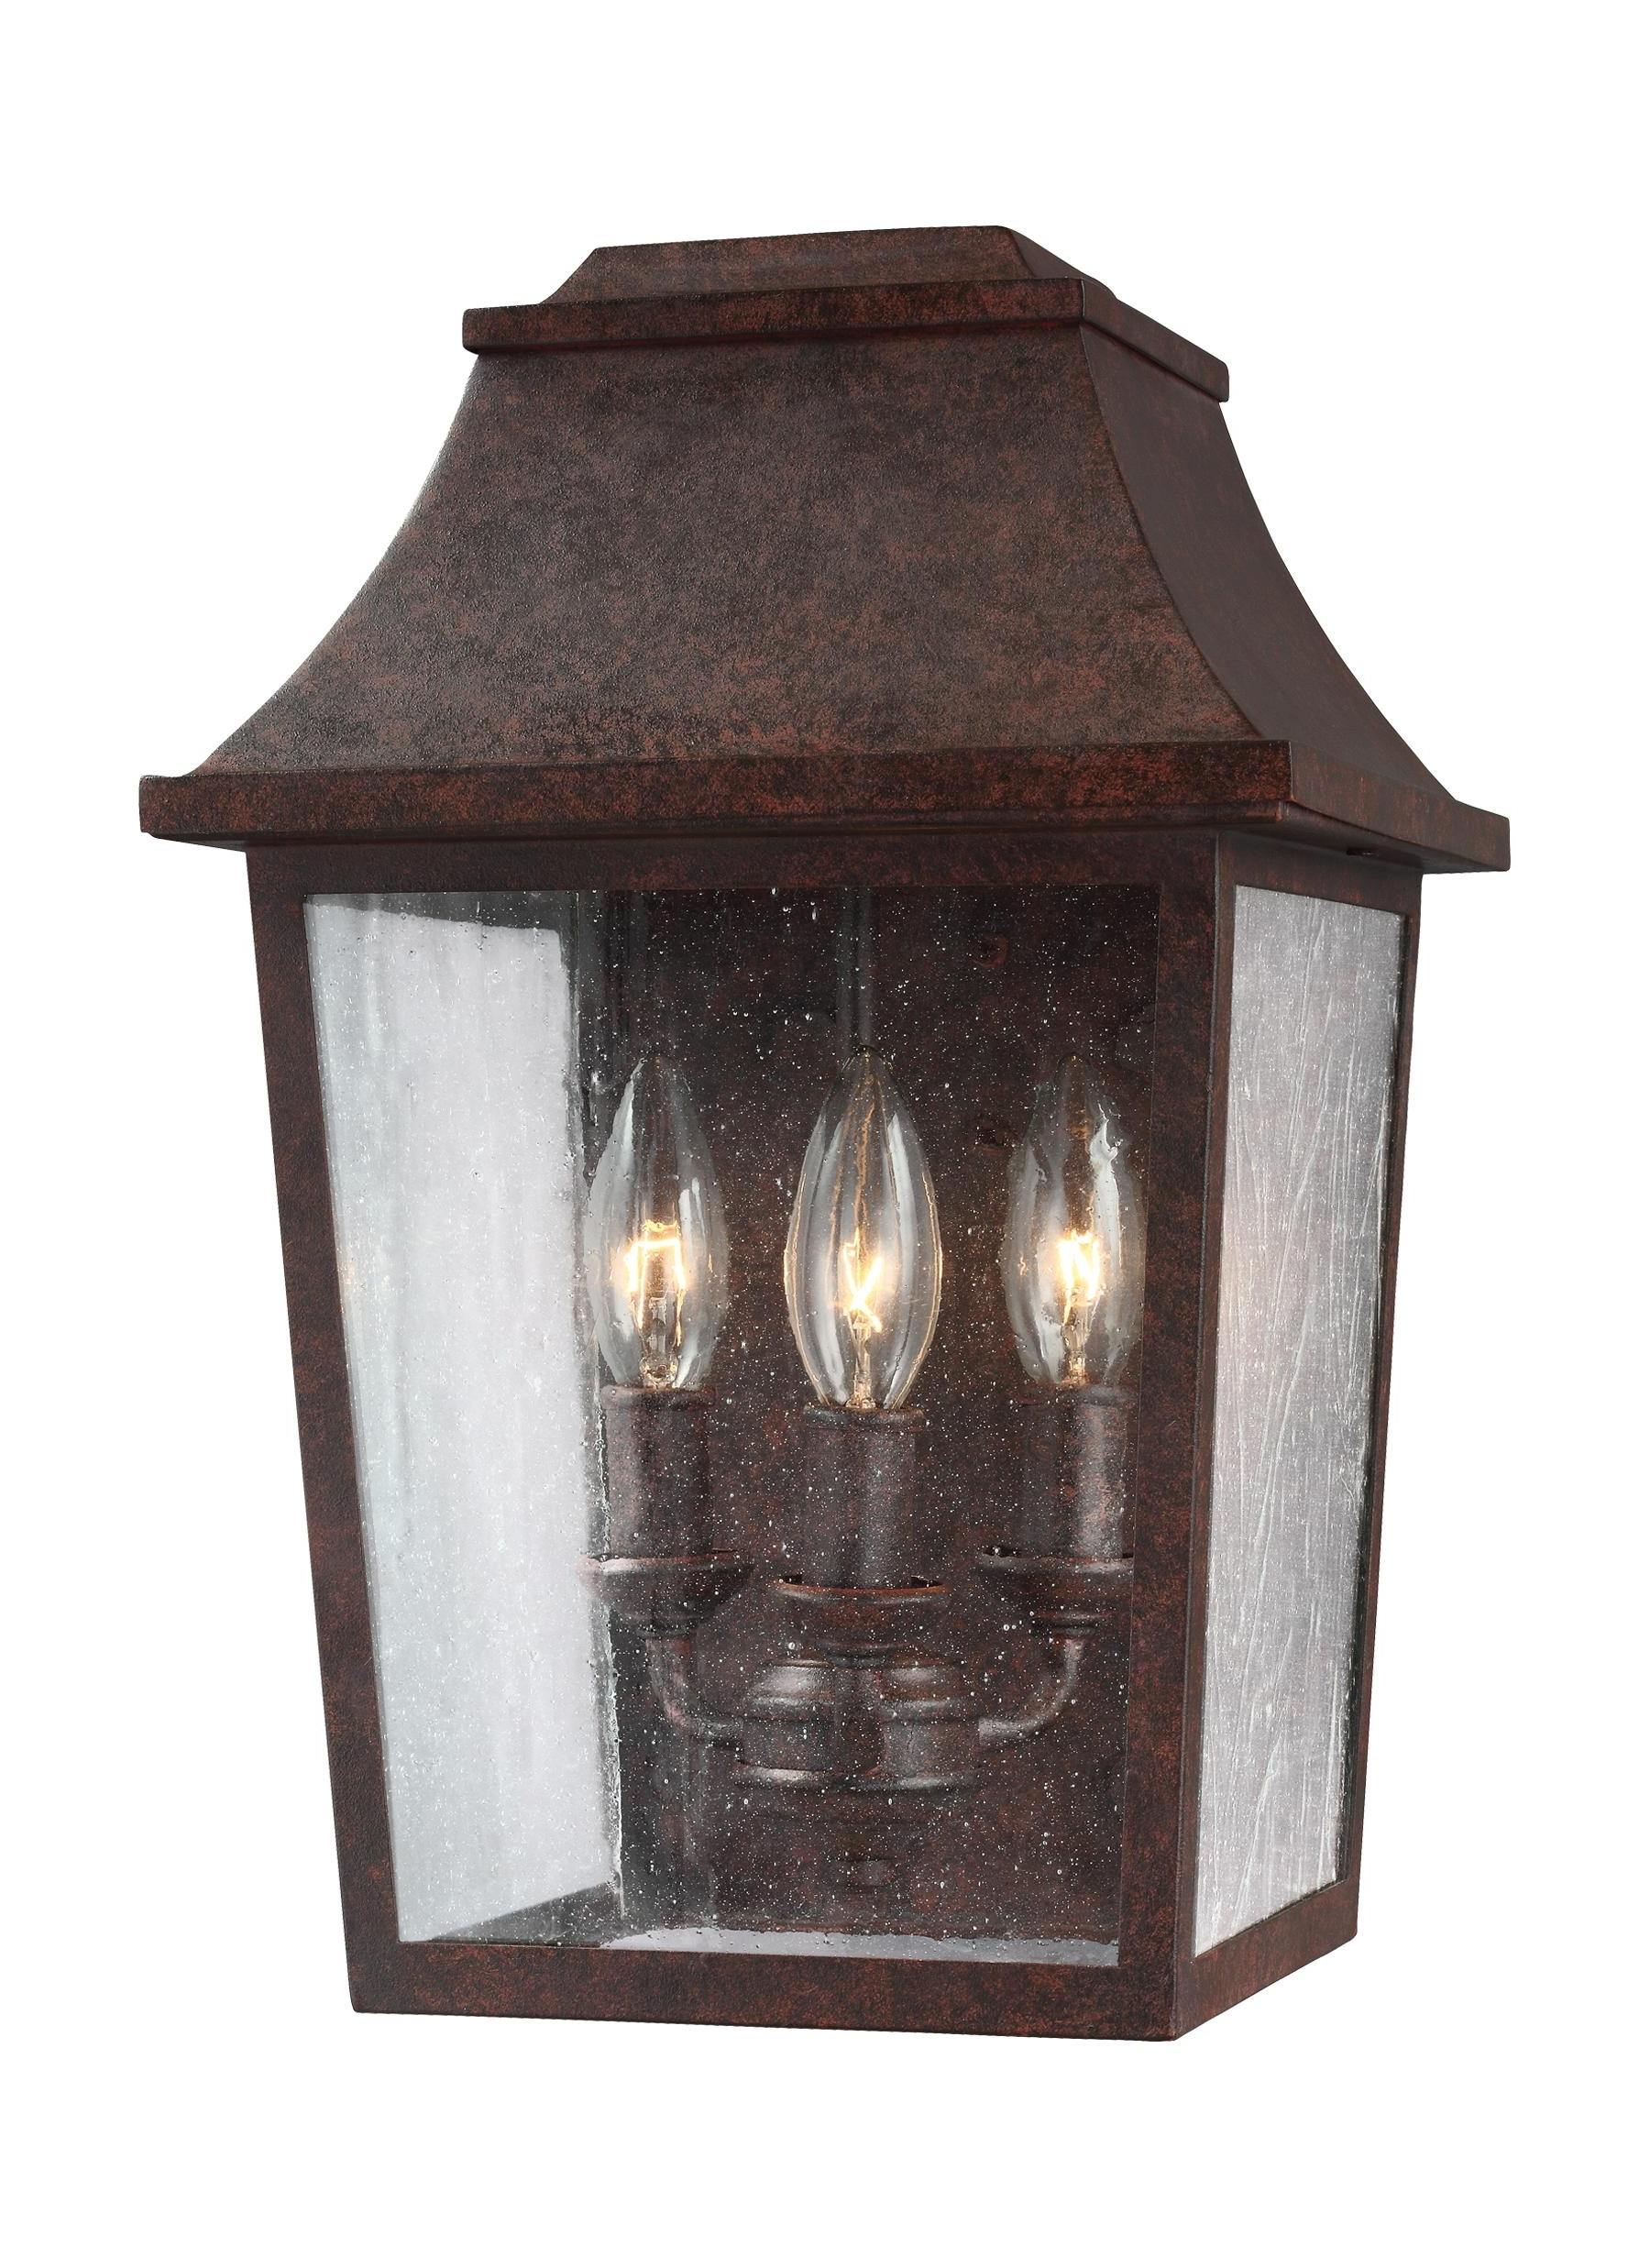 Copper Outdoor Ceiling Lights Throughout Current Ol11901Pcr,3 – Light Outdoor Wall Lantern,patina Copper (View 7 of 20)